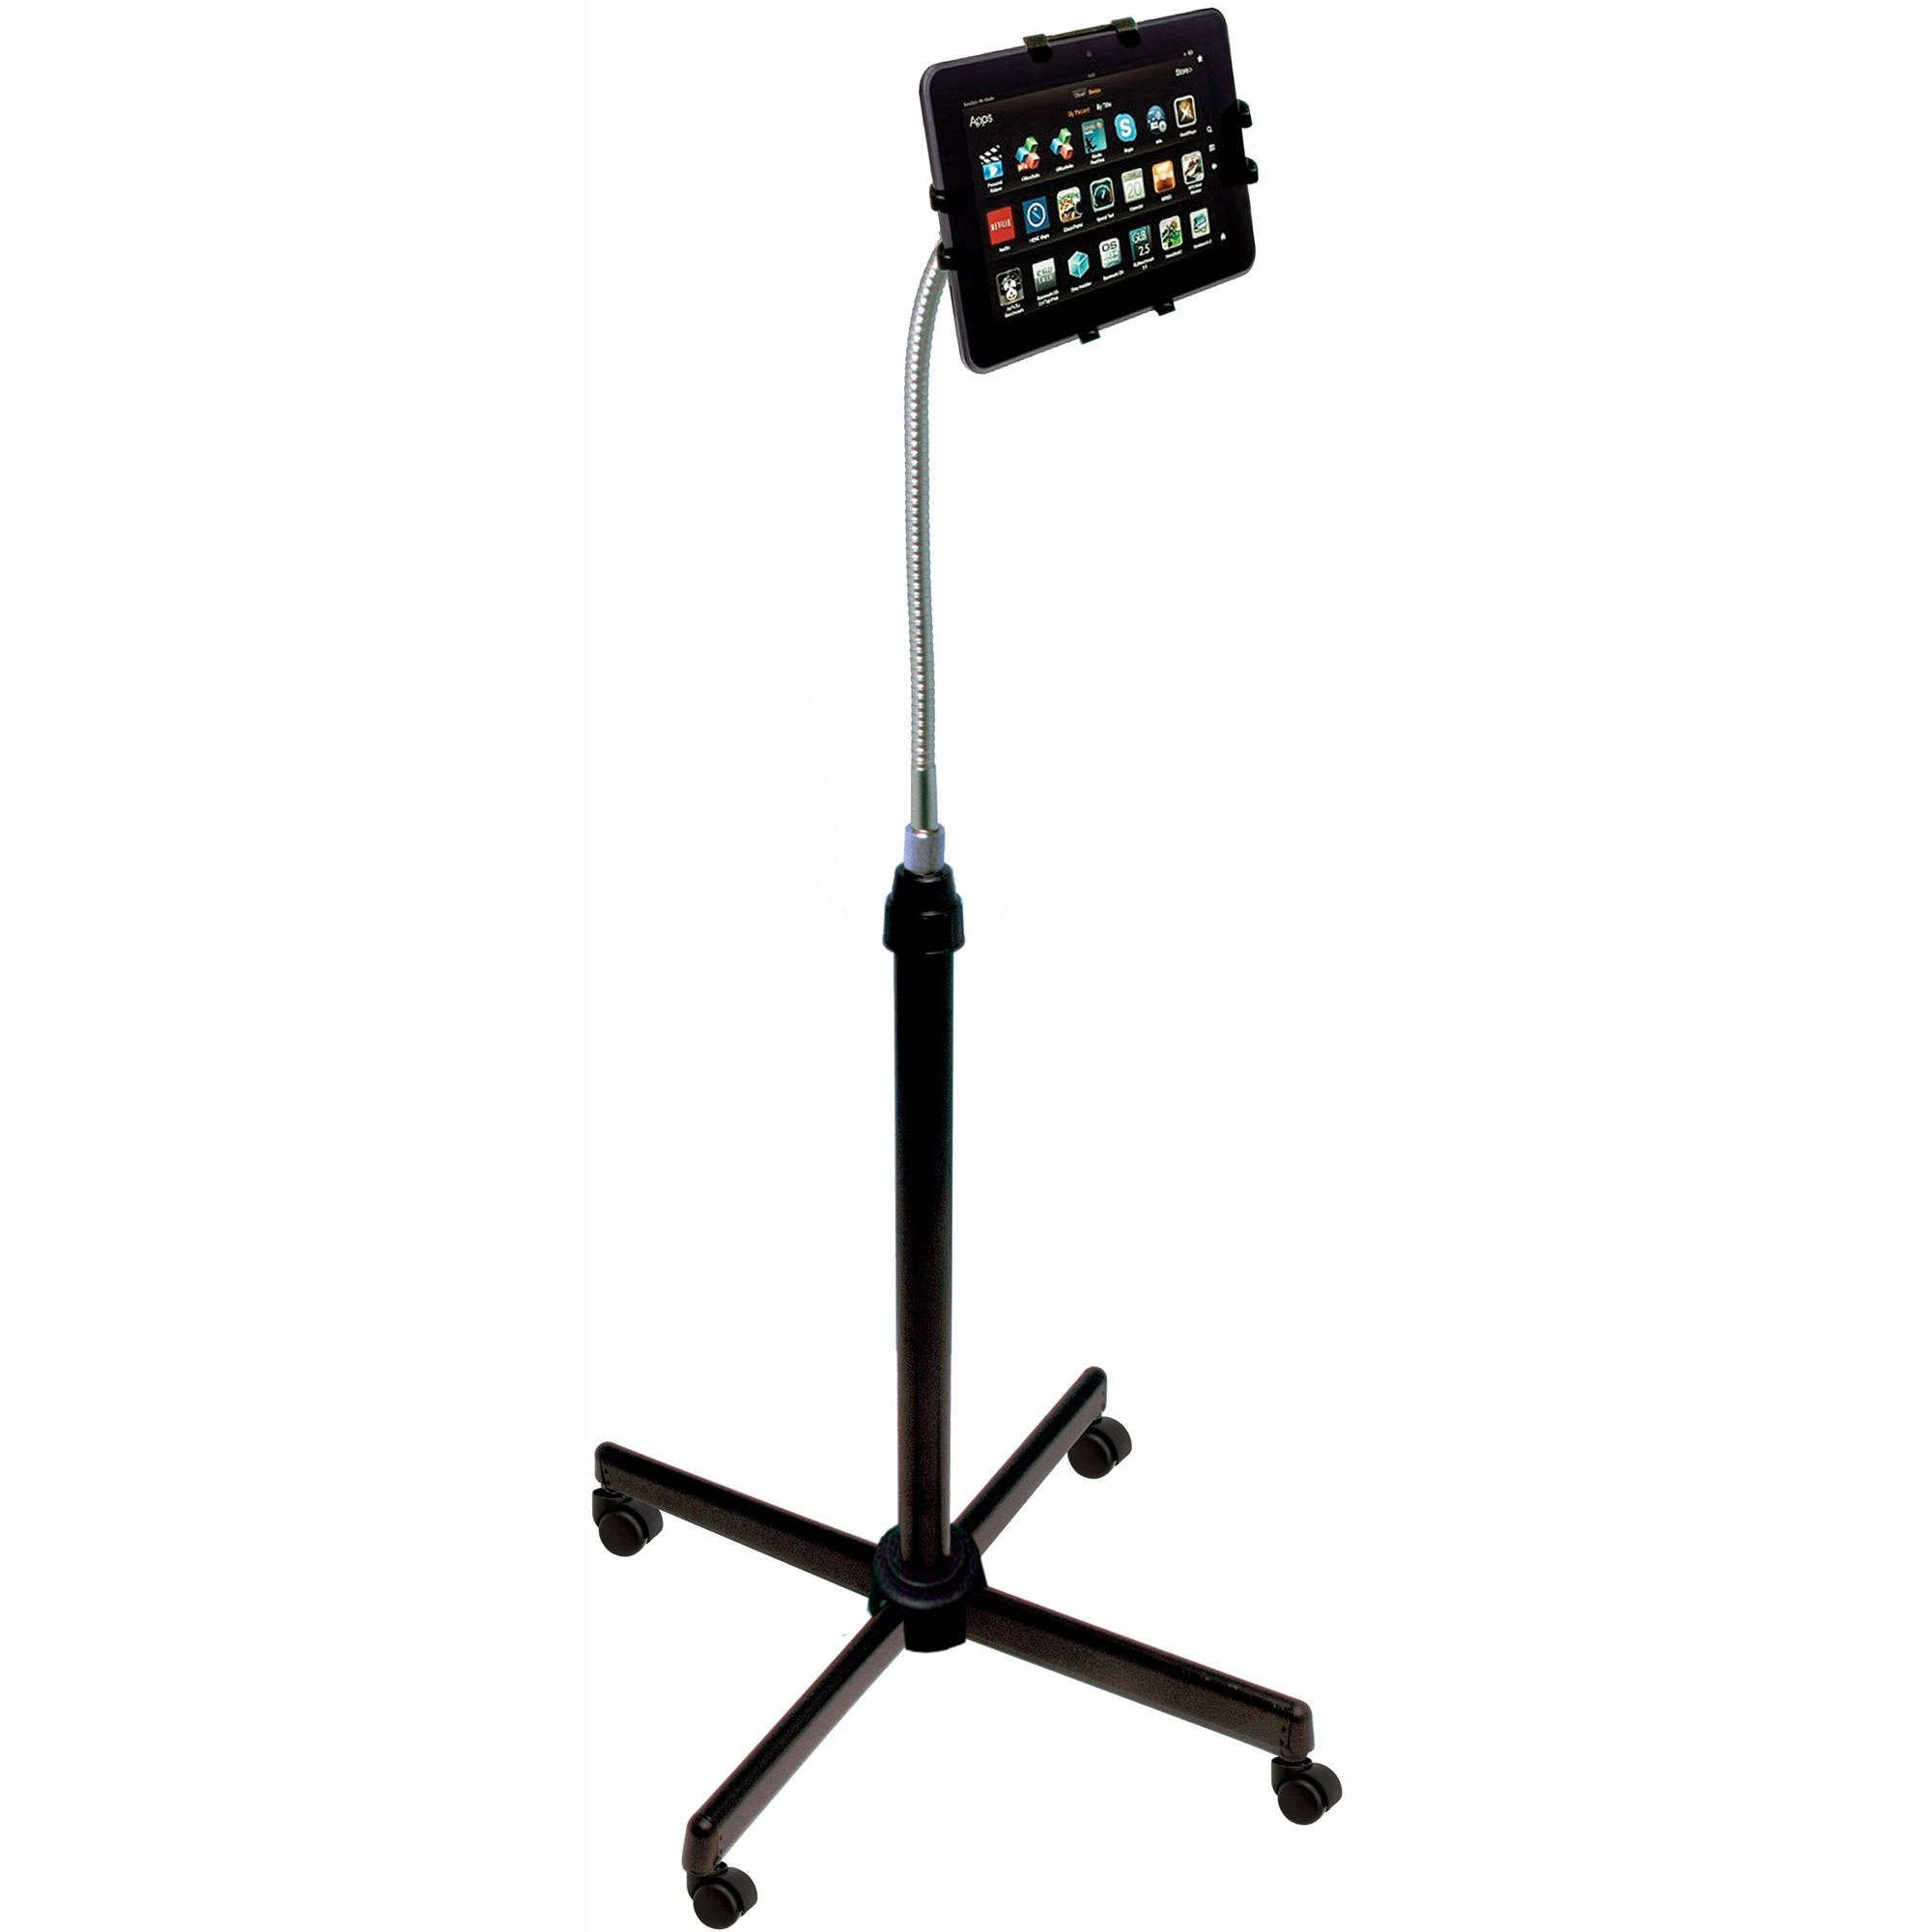 Deluxe Universal Floor Stand for Insta Line with Casters - HK52367